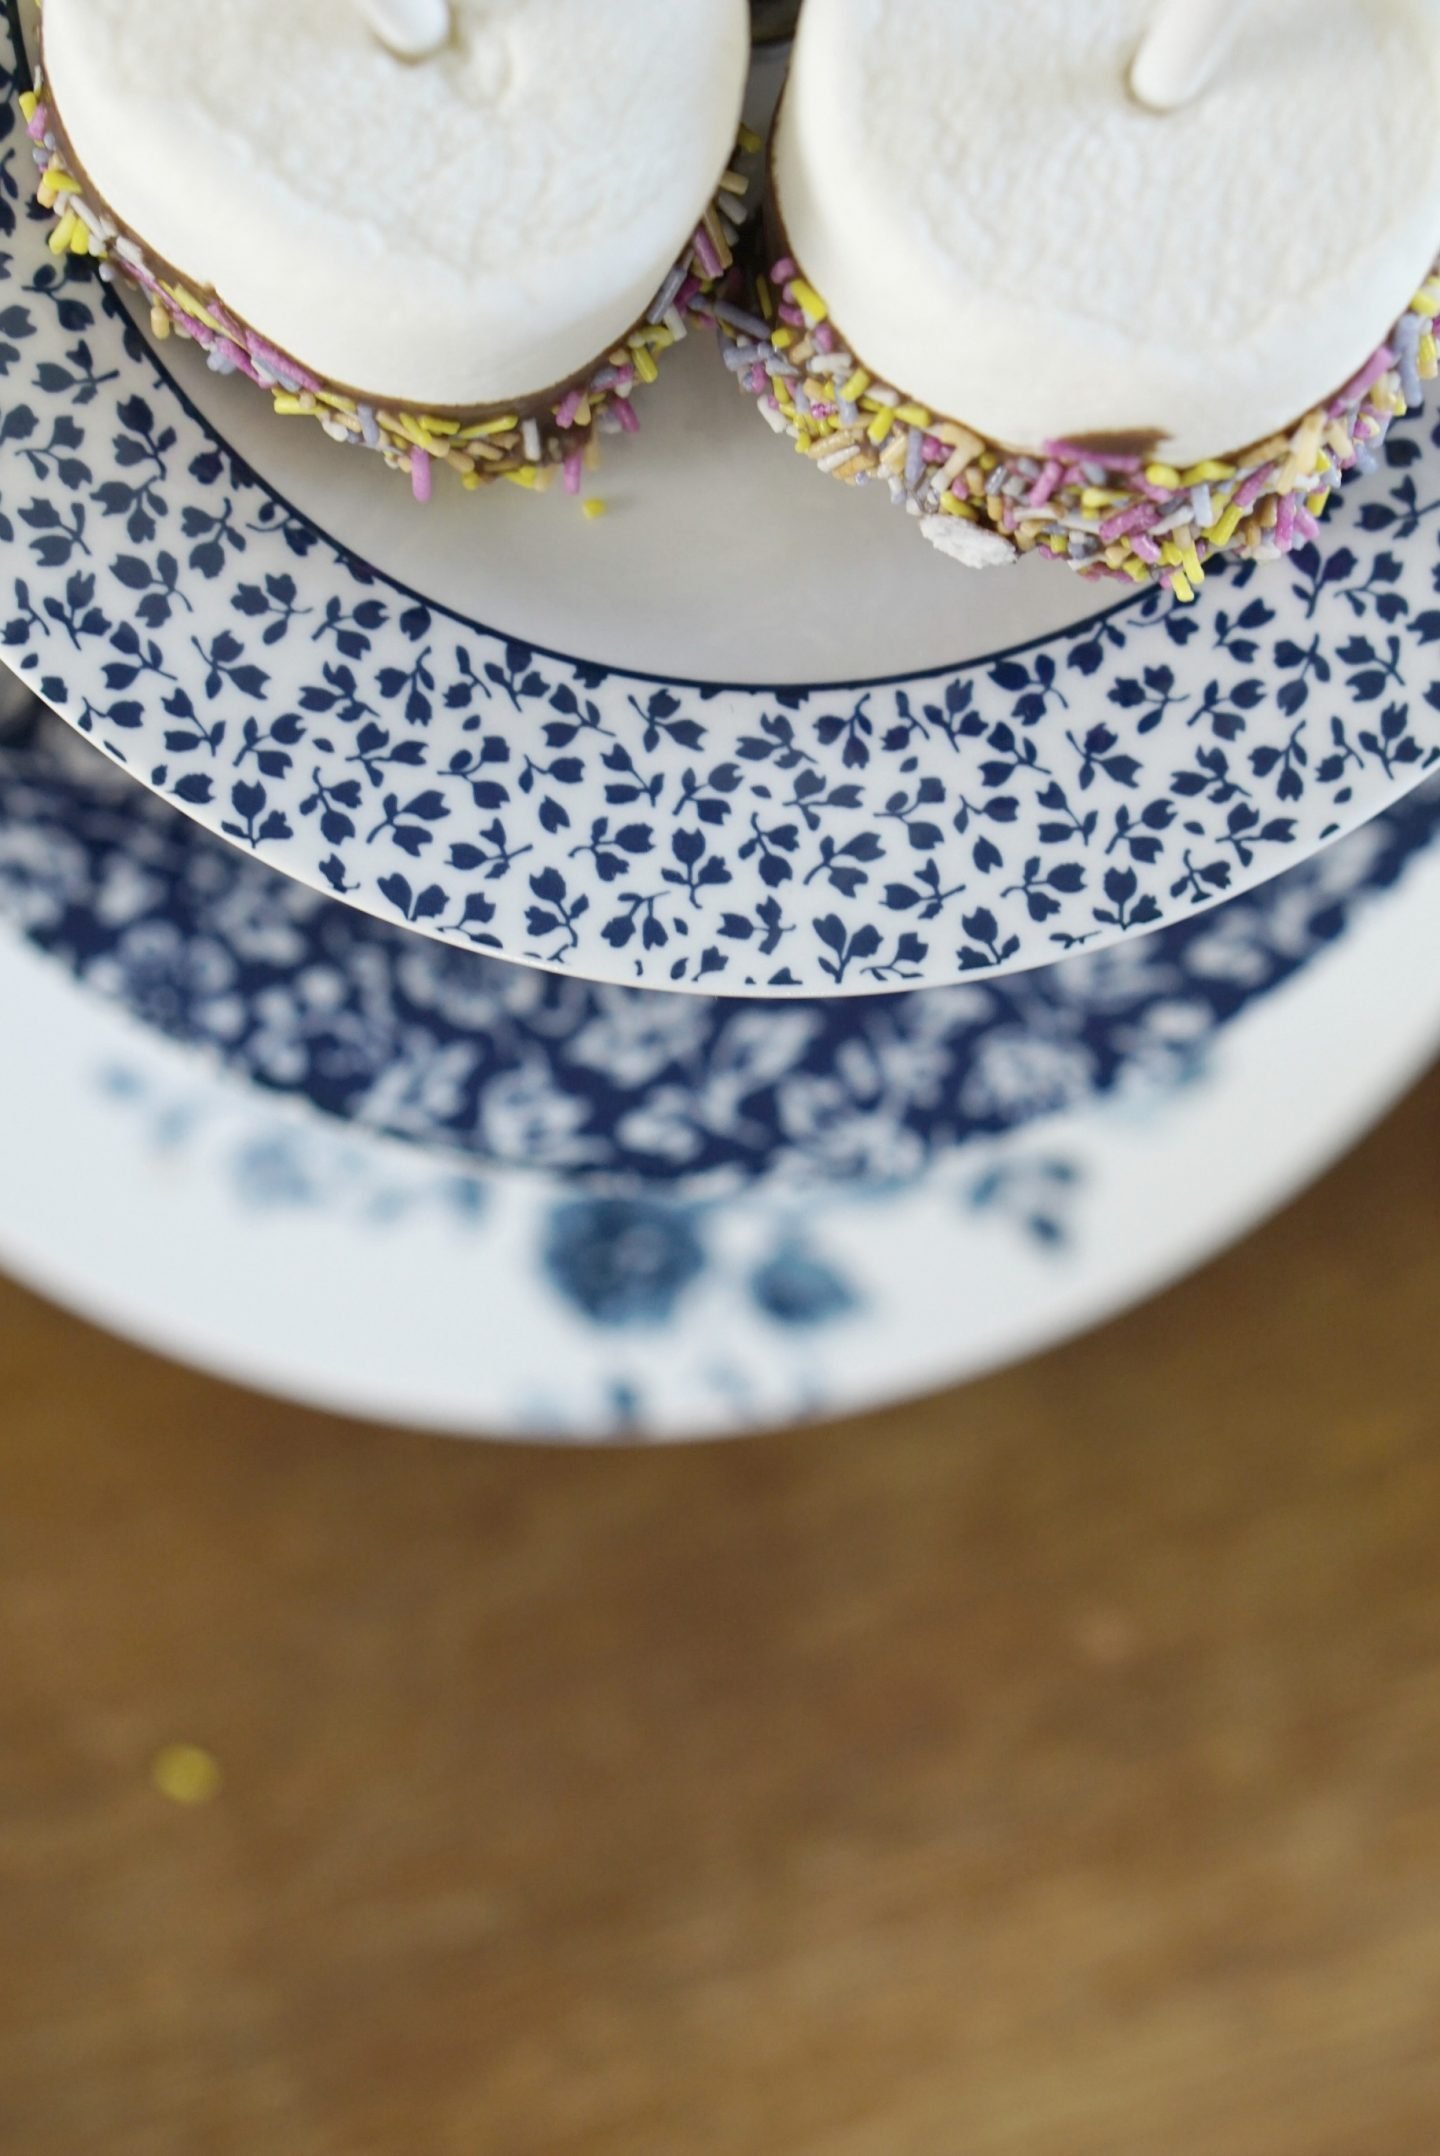 Laura Ashley Sweet Alyssum Afternoon Tea Set www.extraordinarychaos.com